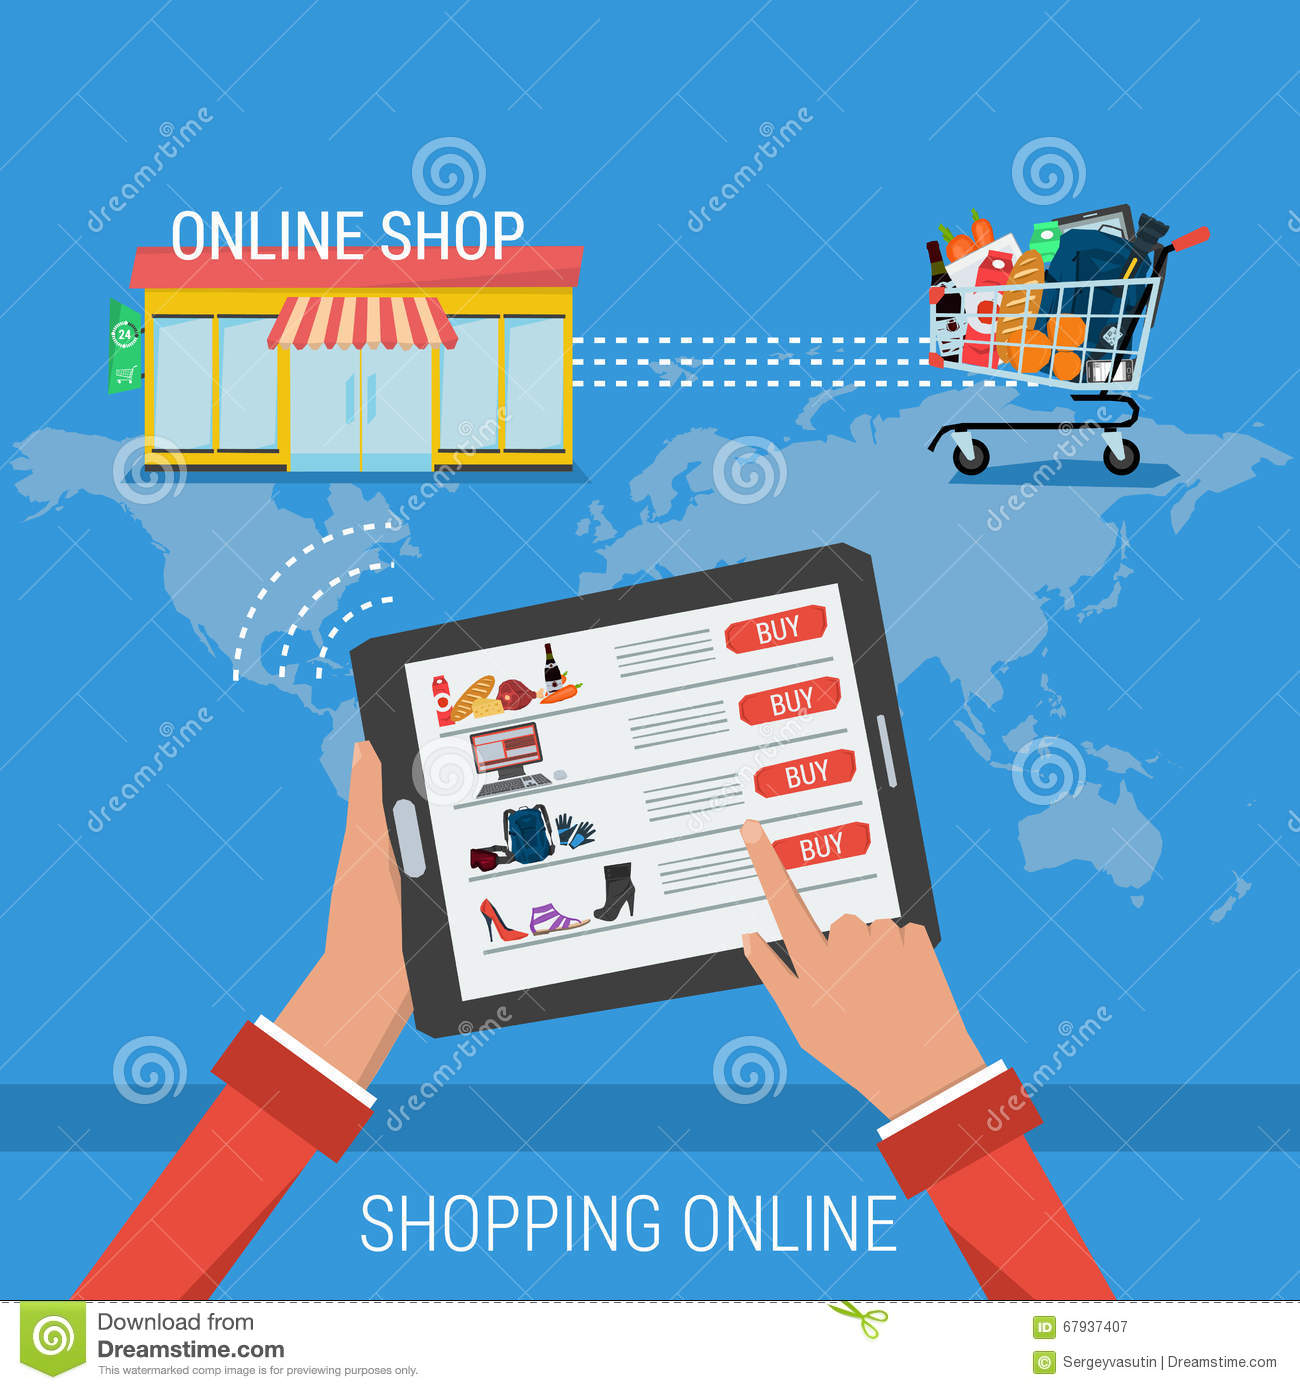 Easy online shop